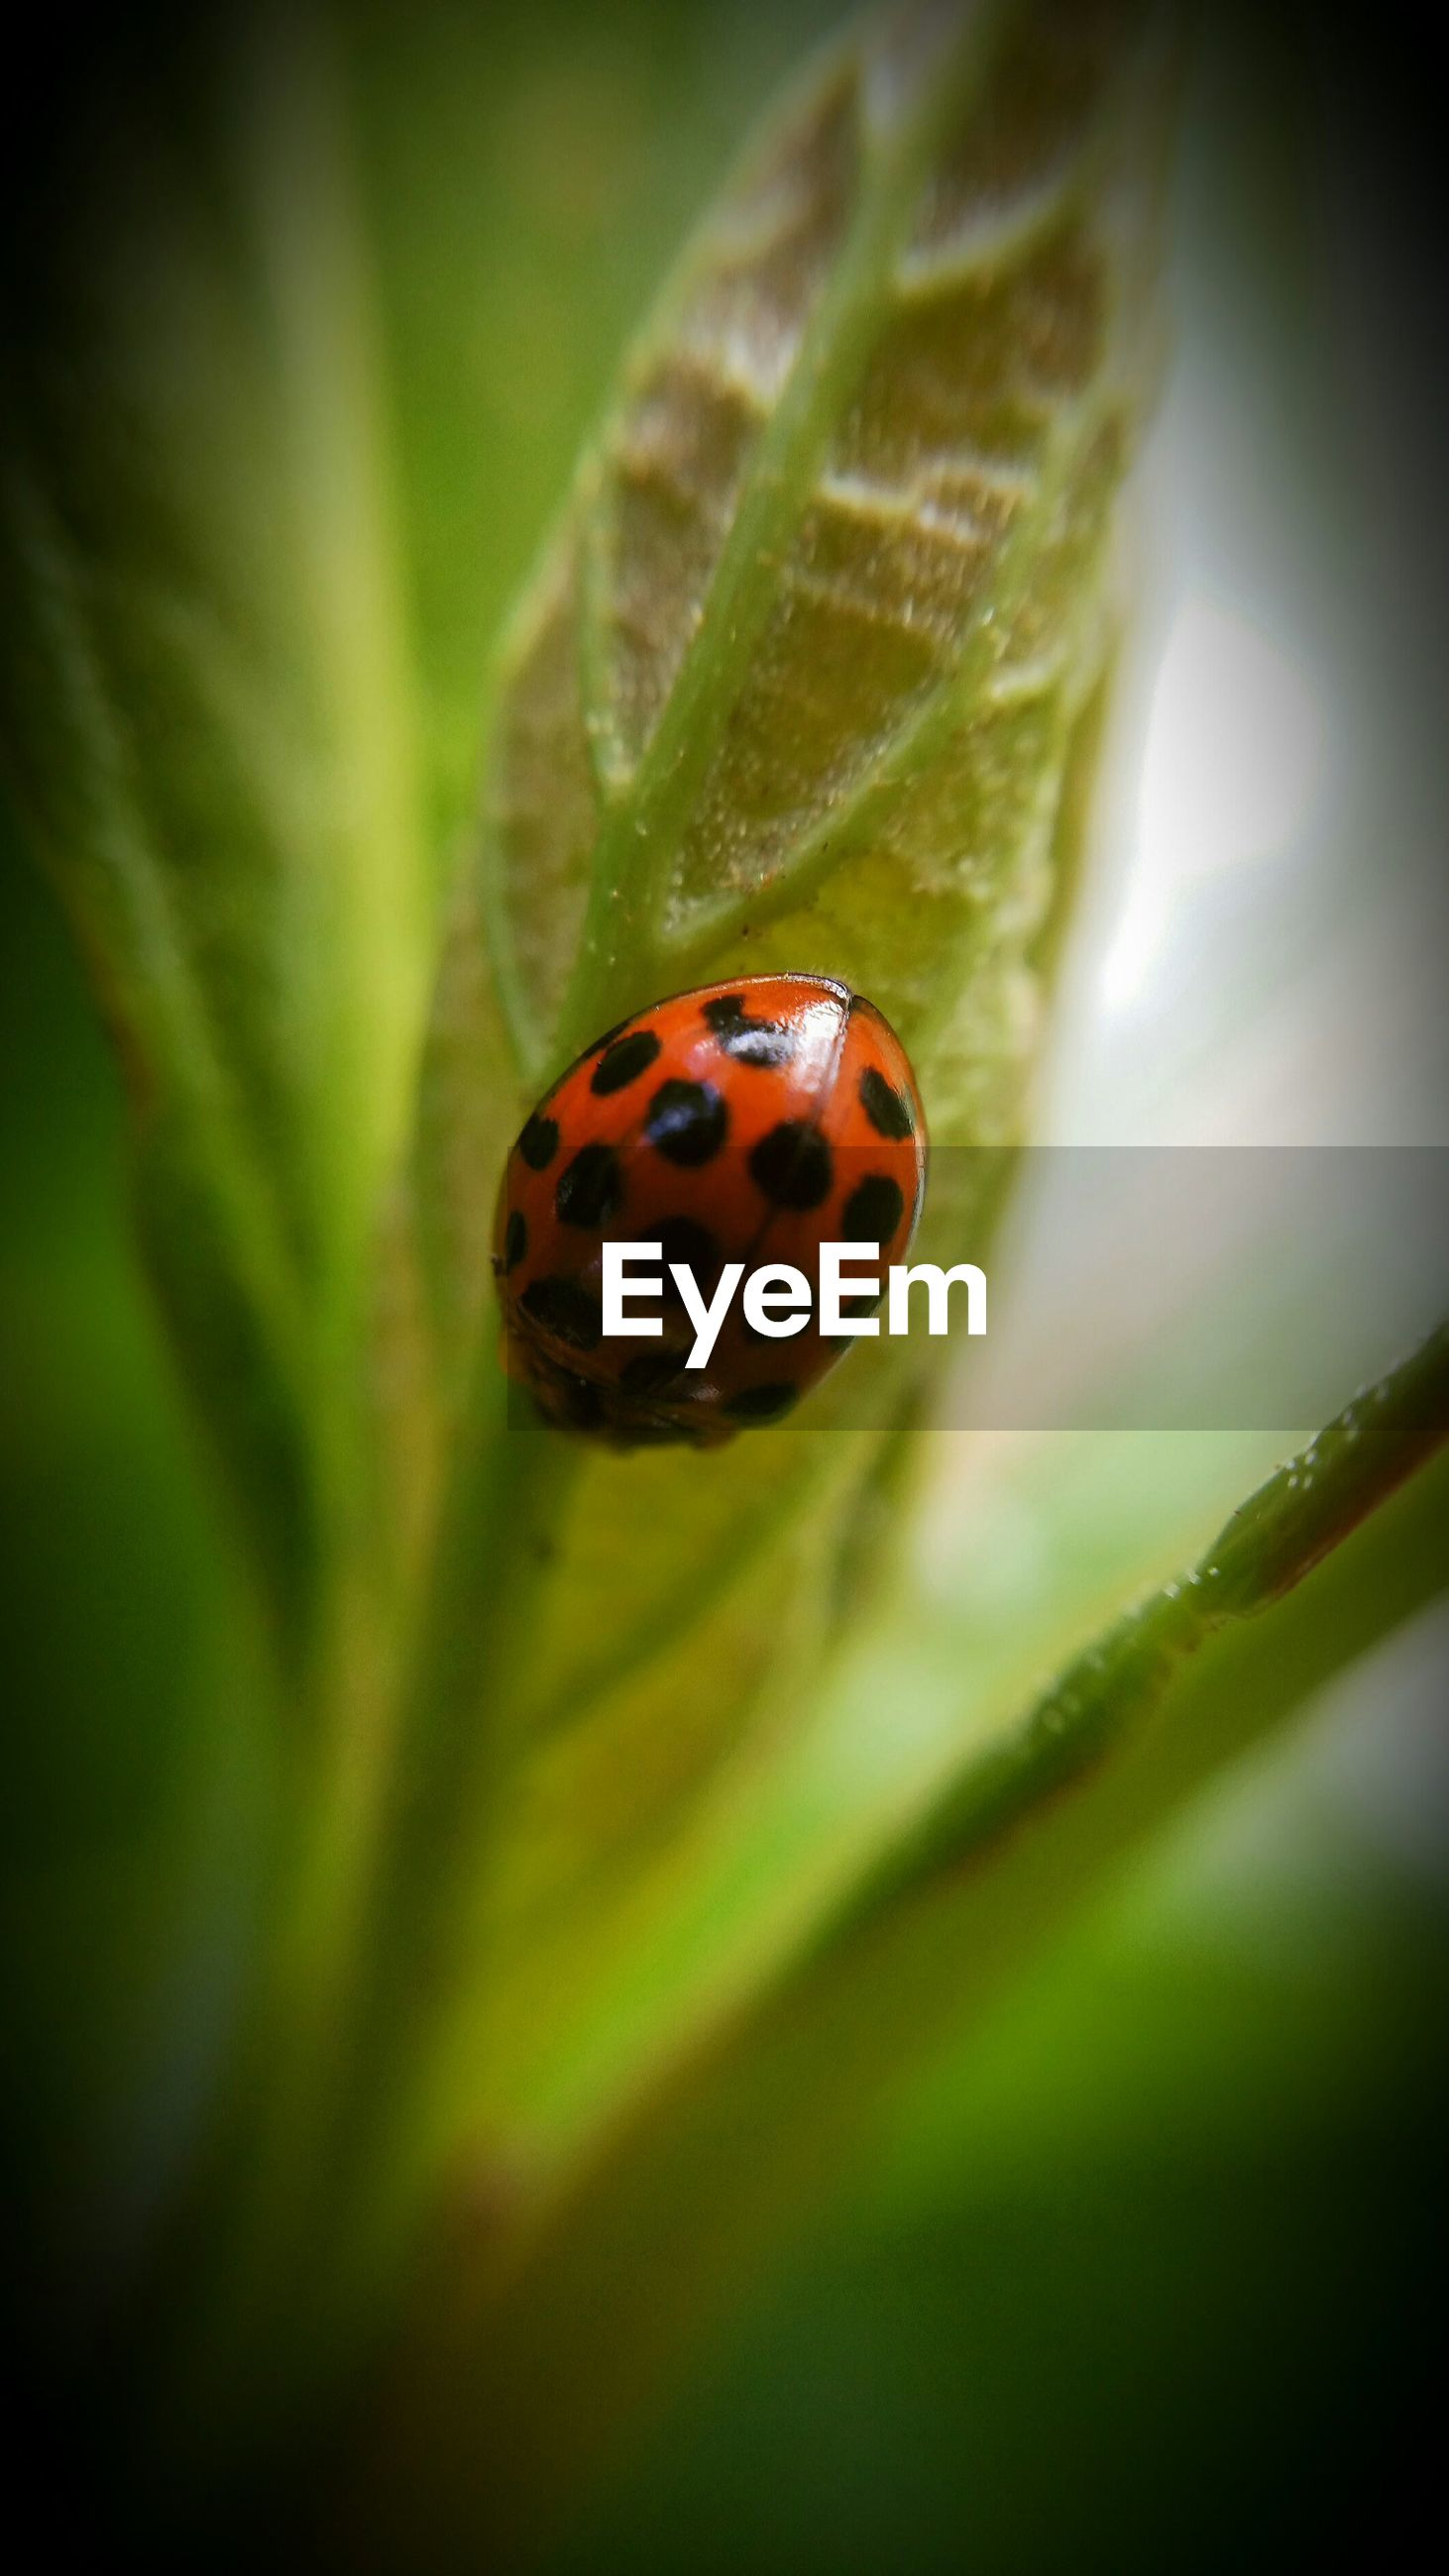 insect, one animal, animal themes, ladybug, animals in the wild, wildlife, green color, leaf, close-up, spotted, selective focus, plant, focus on foreground, nature, red, beauty in nature, growth, day, outdoors, no people